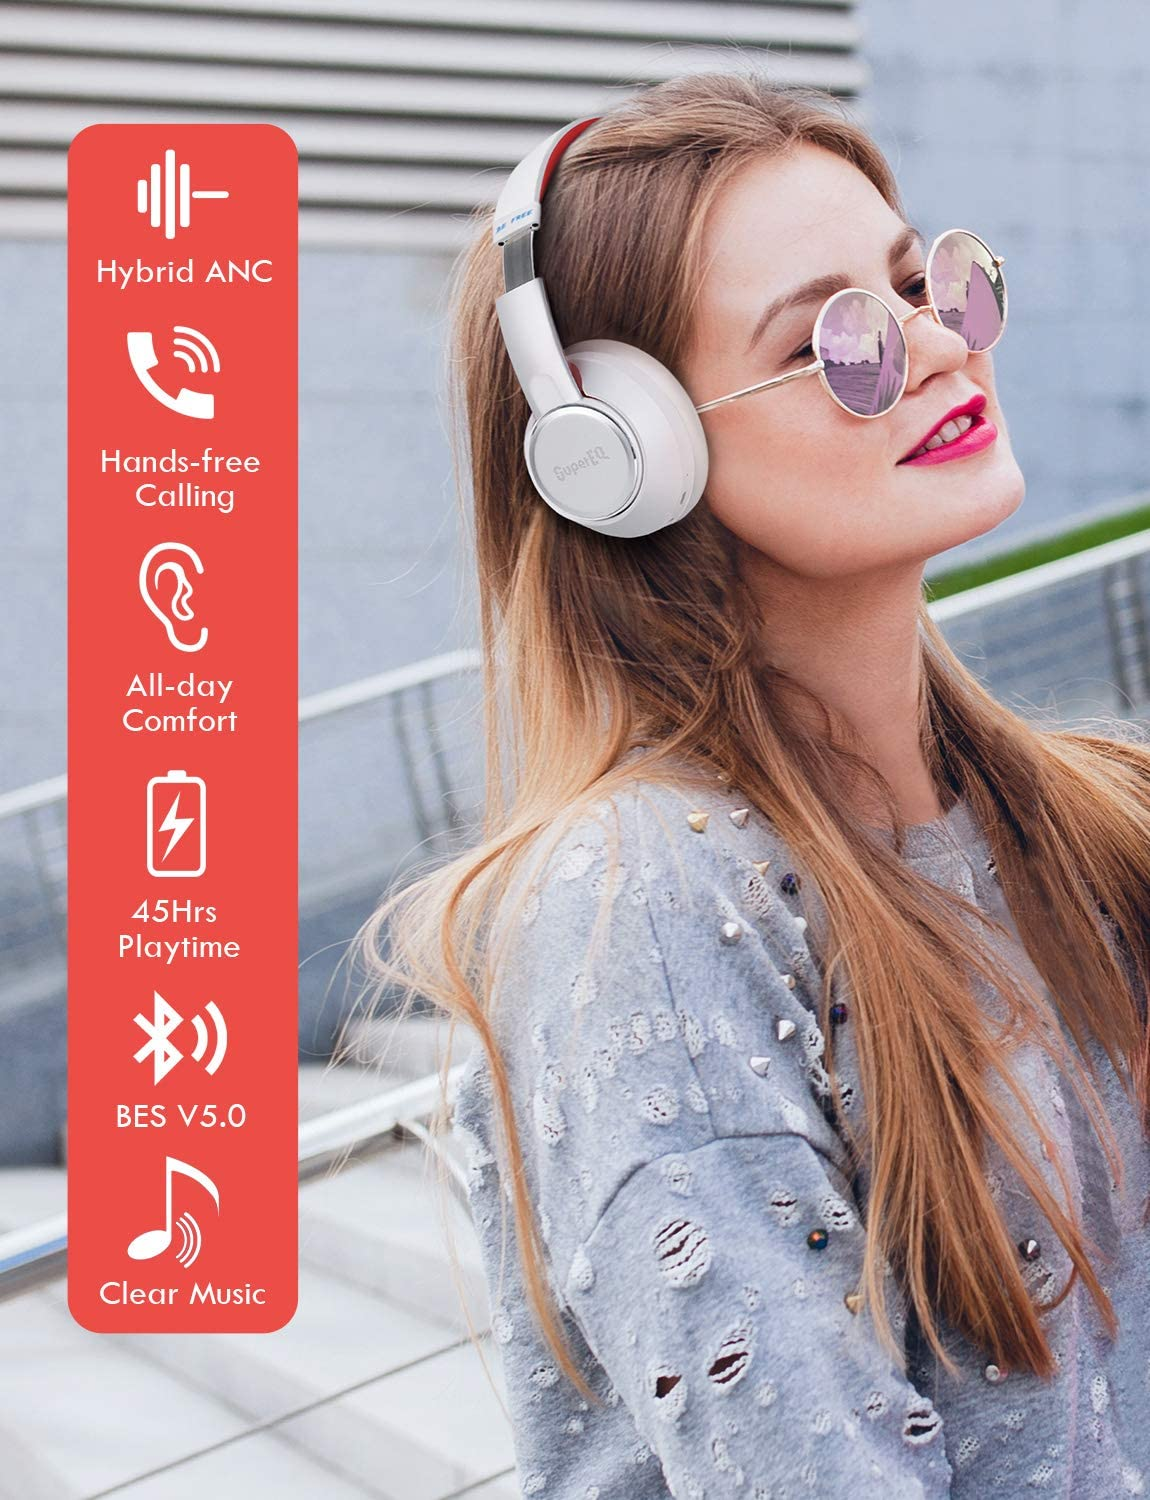 SuperEQ® S1 Hybrid ANC Headphones with Ambient Mode